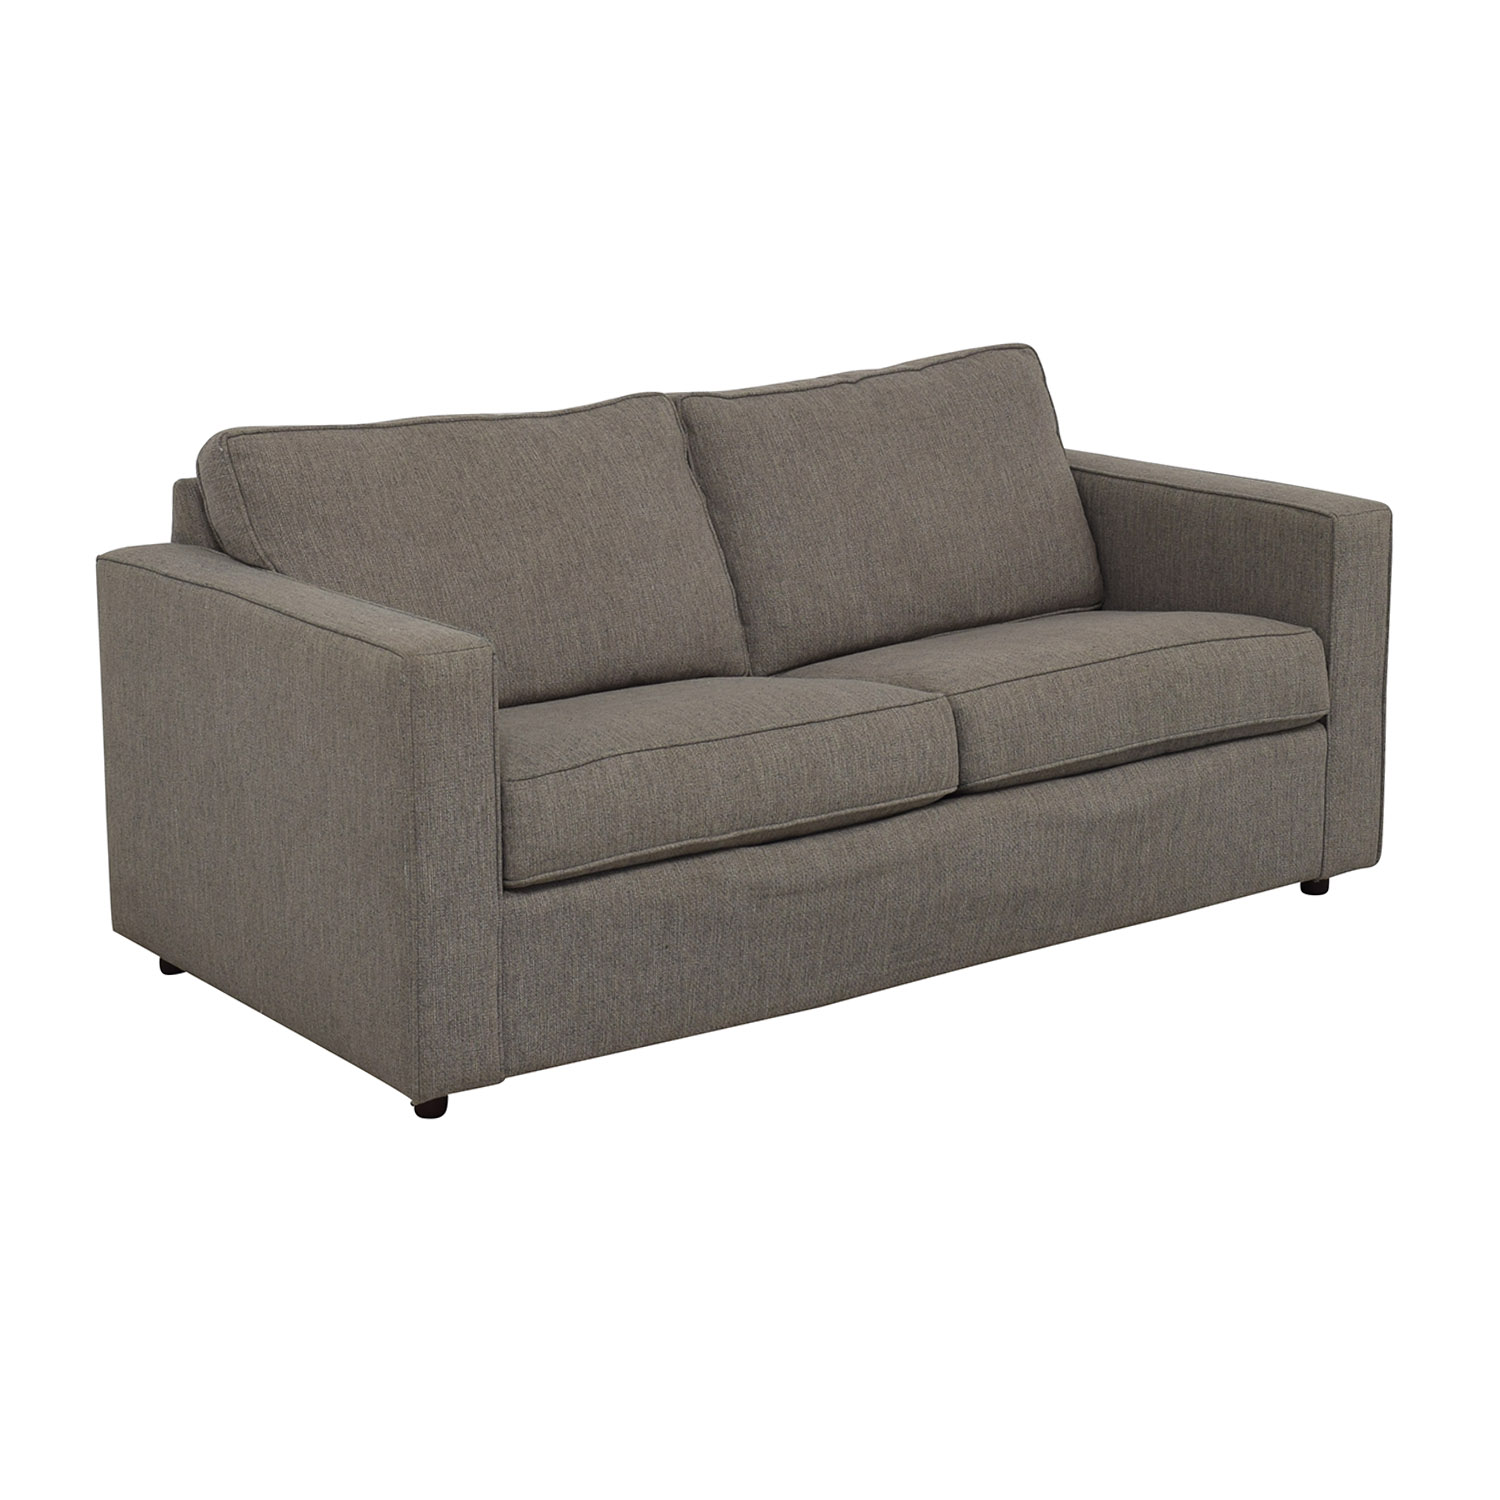 Arhaus Filmore Full Sleeper Sofa / Sofas